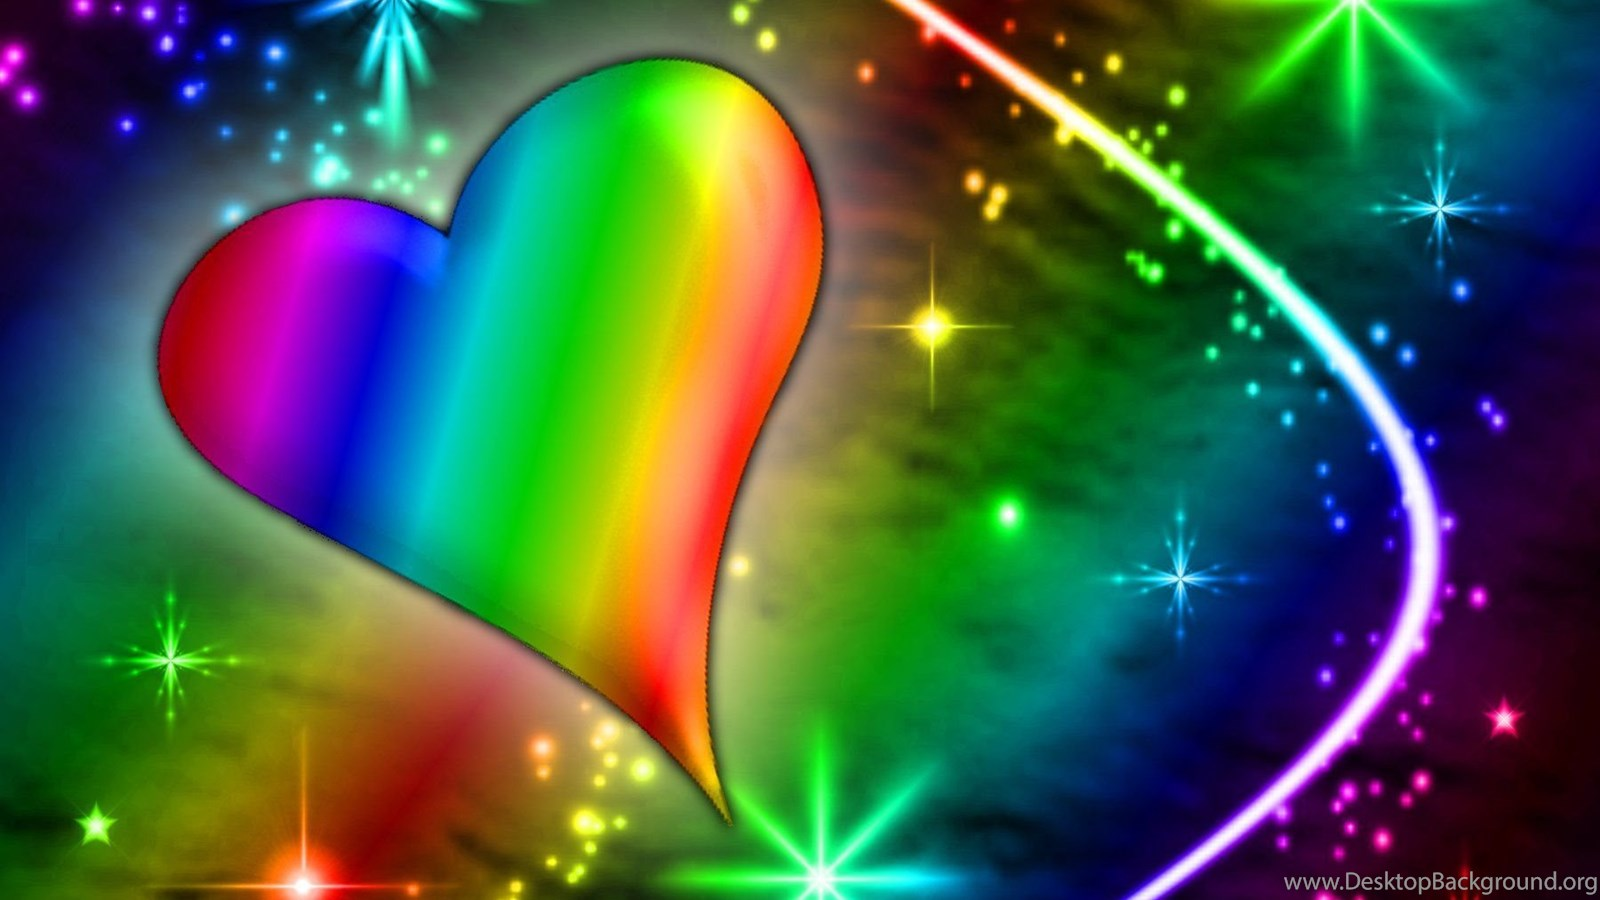 8589130490590 Rainbow Music Notes Wallpaper Hd Jpg: Colors Rainbow Backgrounds And Codes For Any Blog, Web